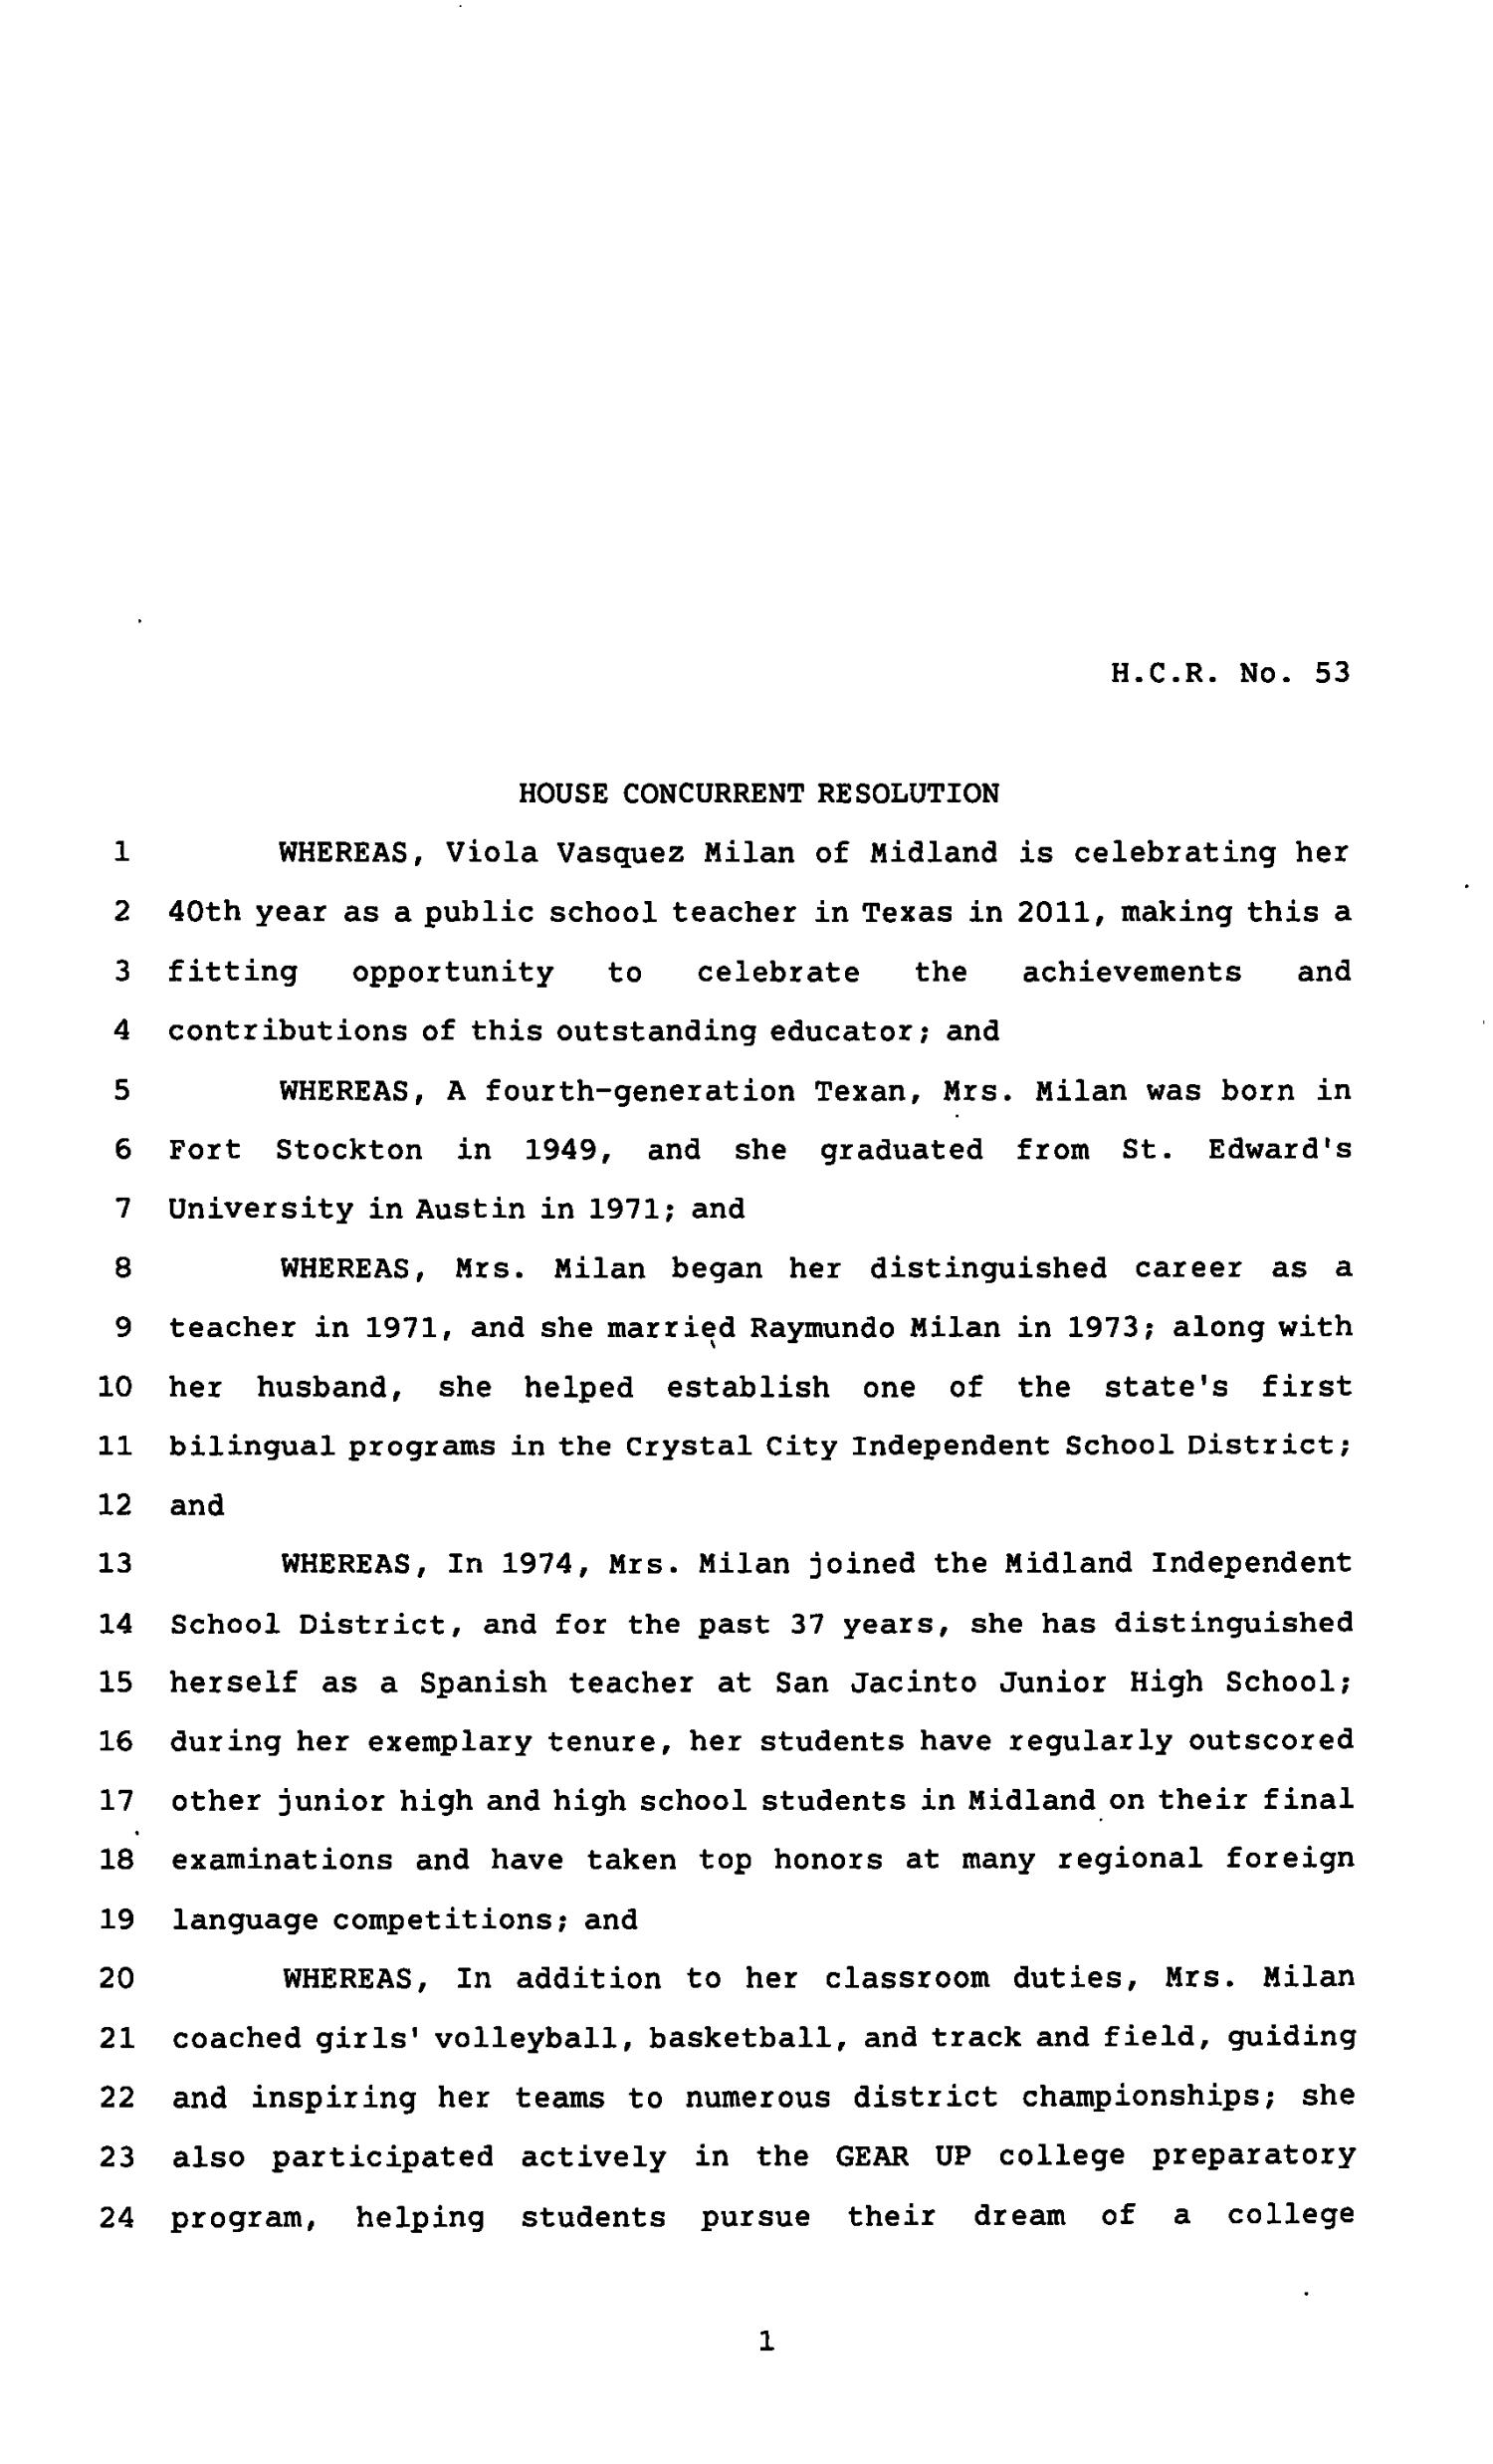 82nd Texas Legislature, Regular Session, House Concurrent Resolution 53                                                                                                      [Sequence #]: 1 of 3